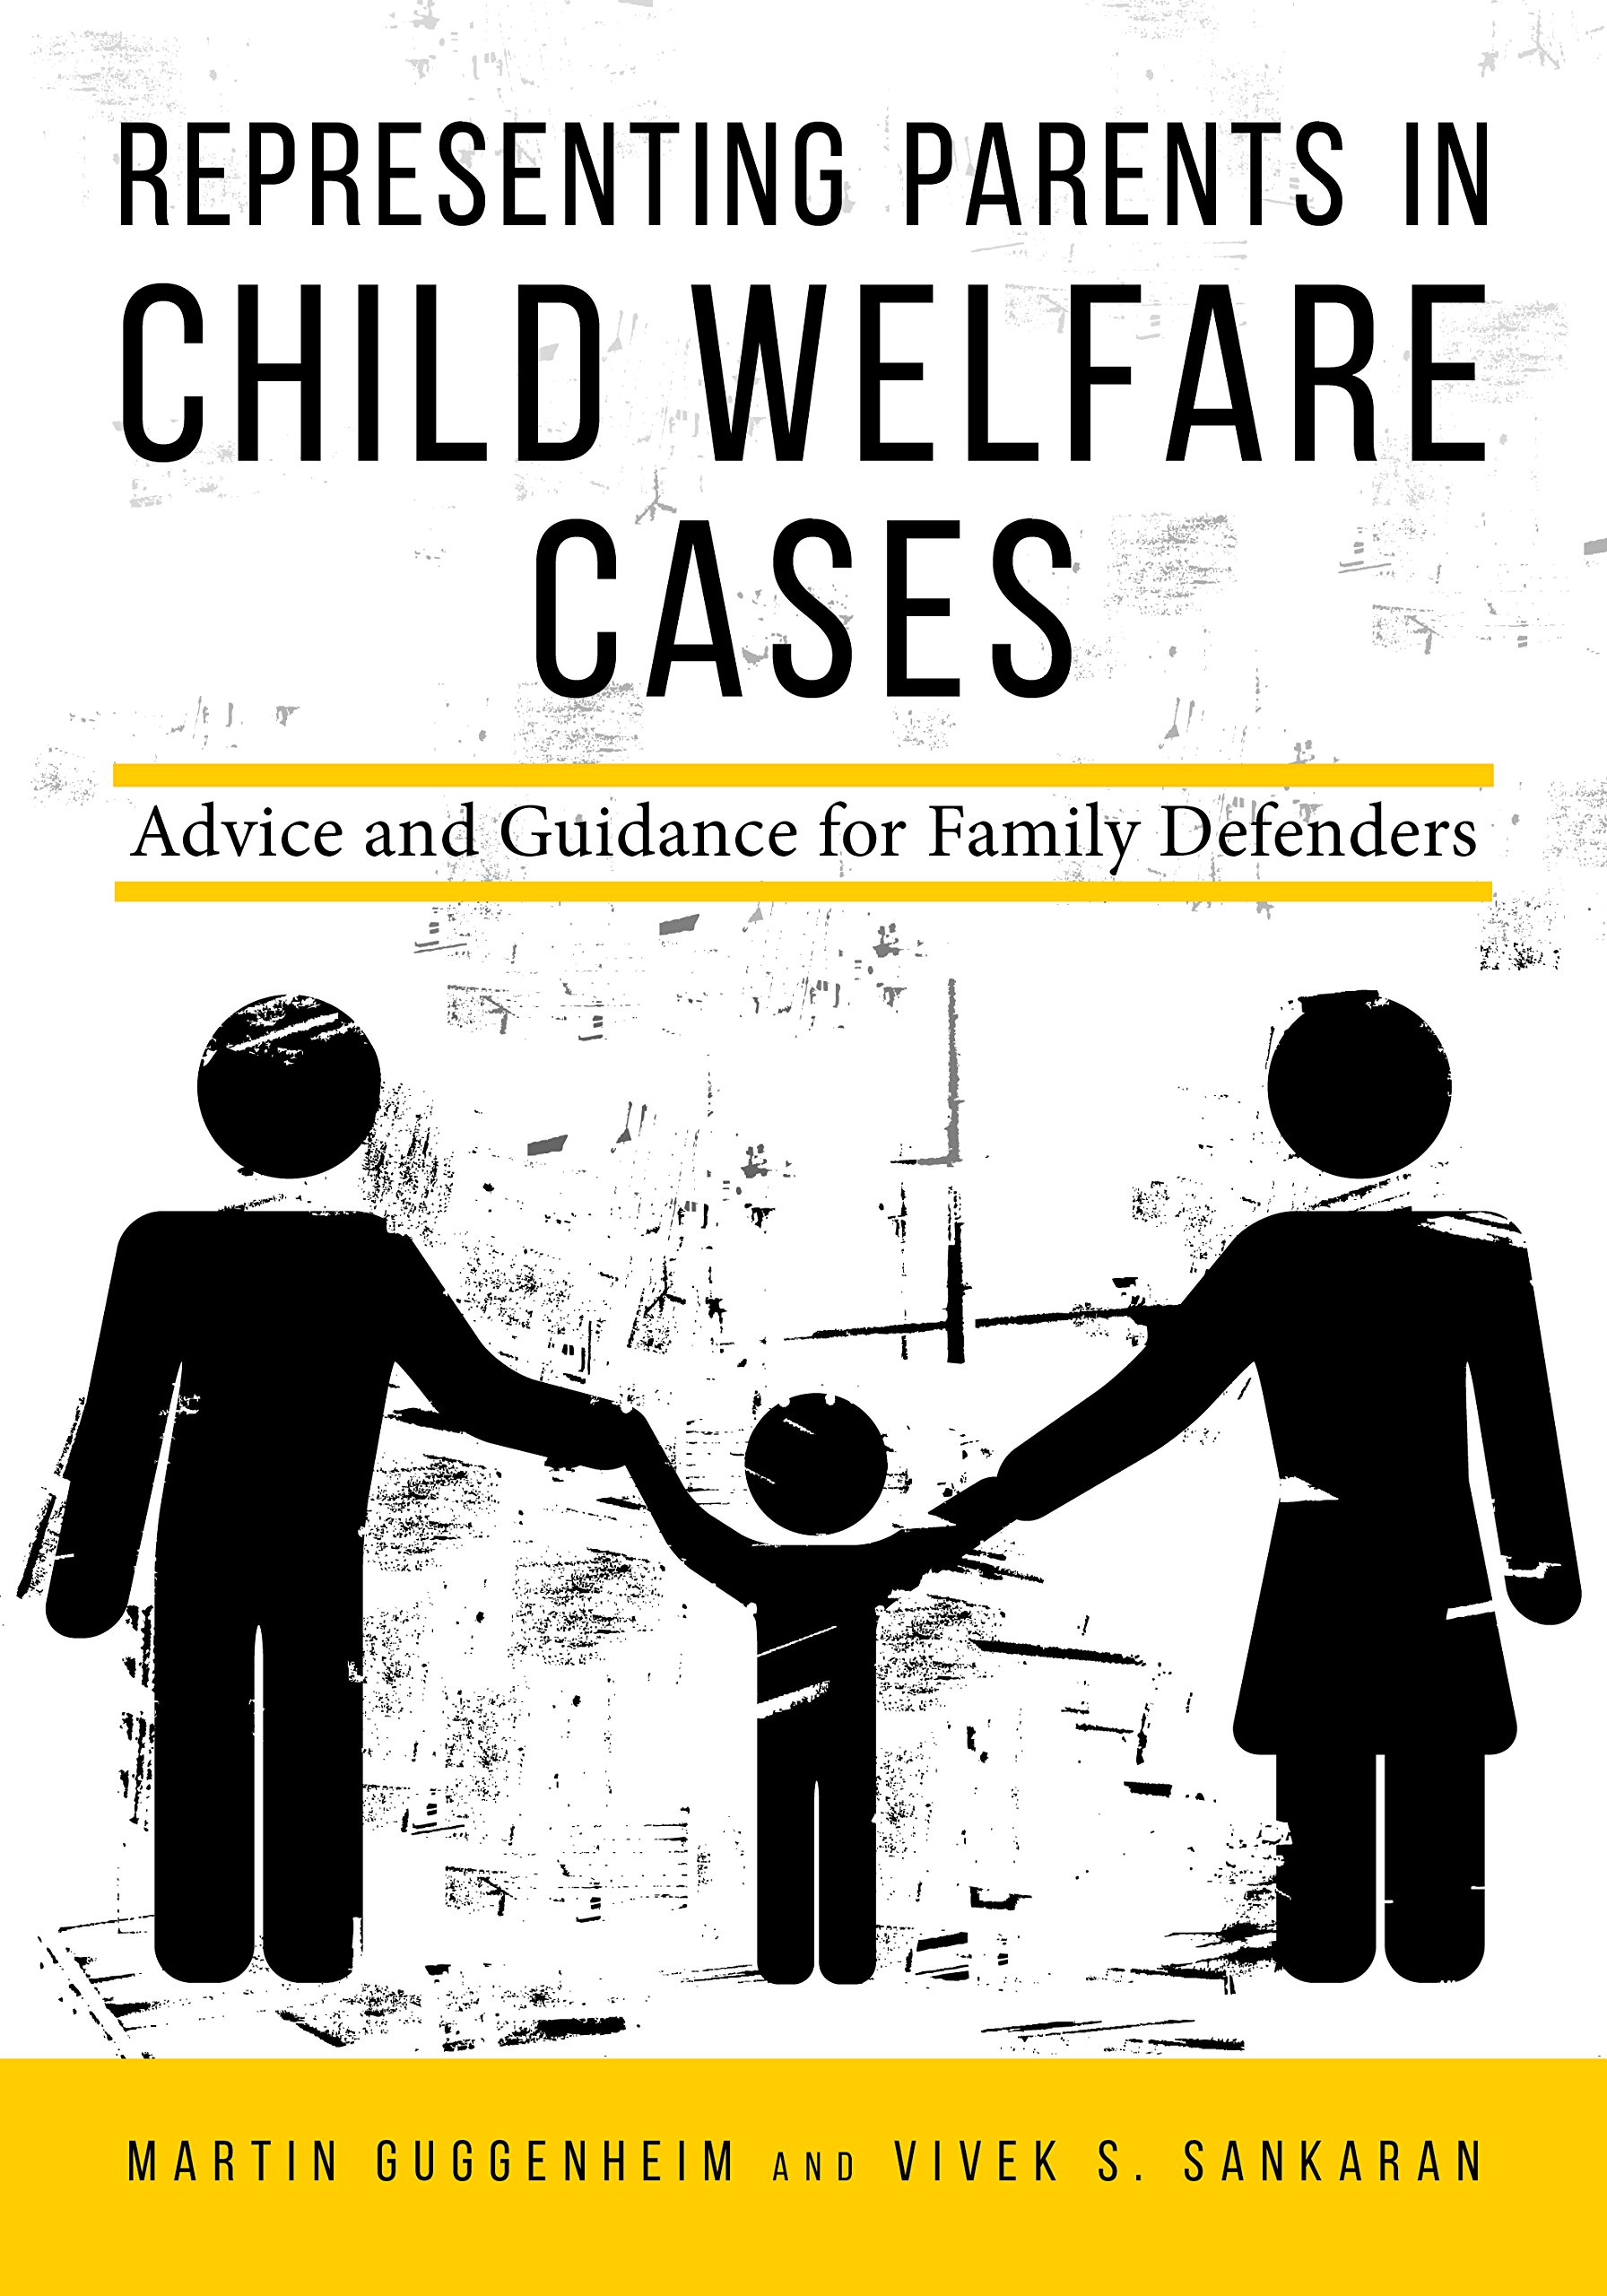 Image OfRepresenting Parents In Child Welfare Cases: Advice And Guidance For Family Defenders